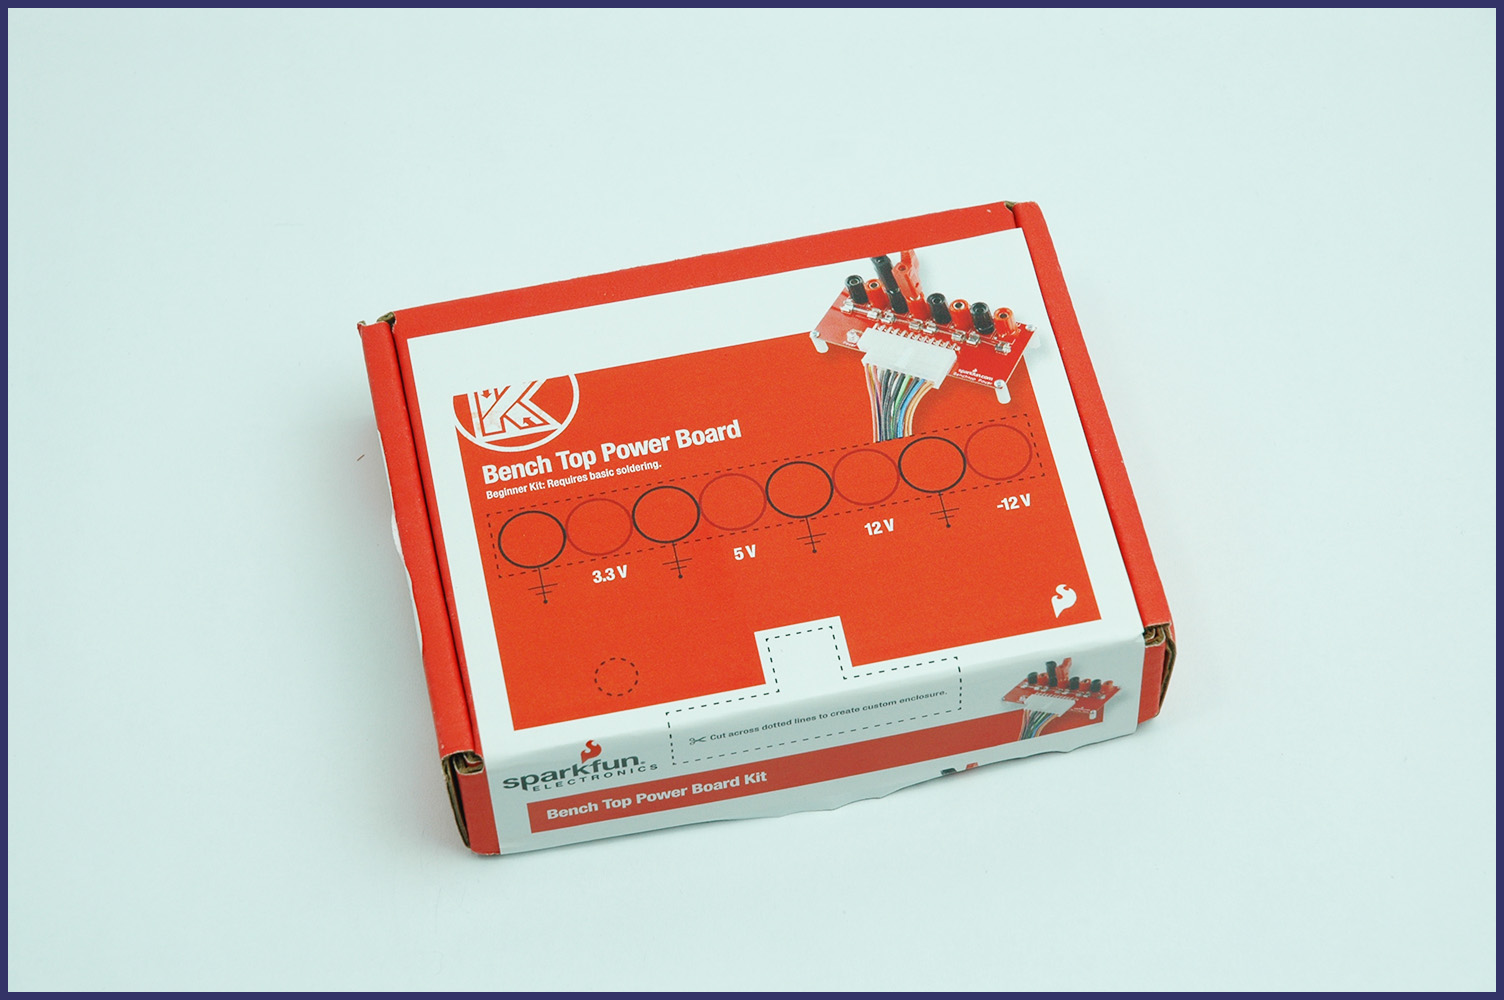 Techunboxed: Sparkfun Bench Top Power Board Kit [Review]